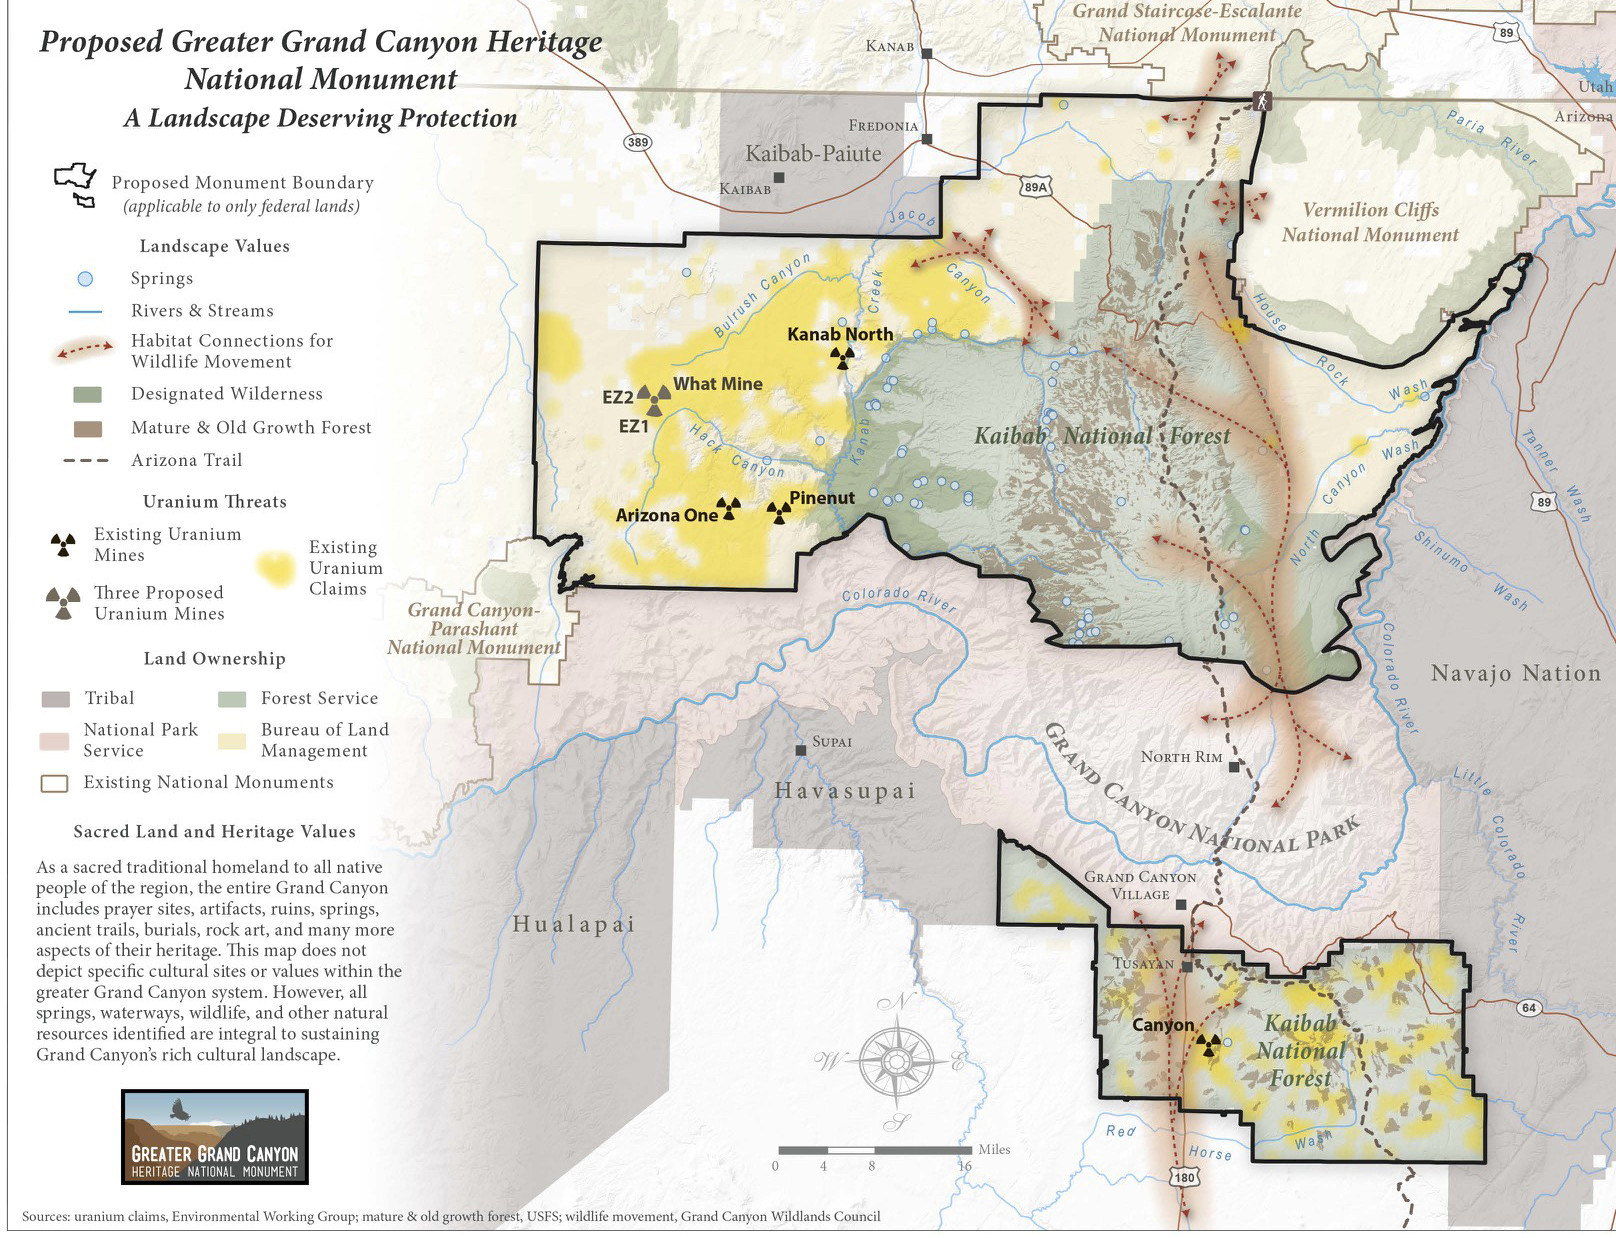 https://i.ibb.co/sWyFXvy/greater-grand-canyon-heritage-national-monument-map.jpg